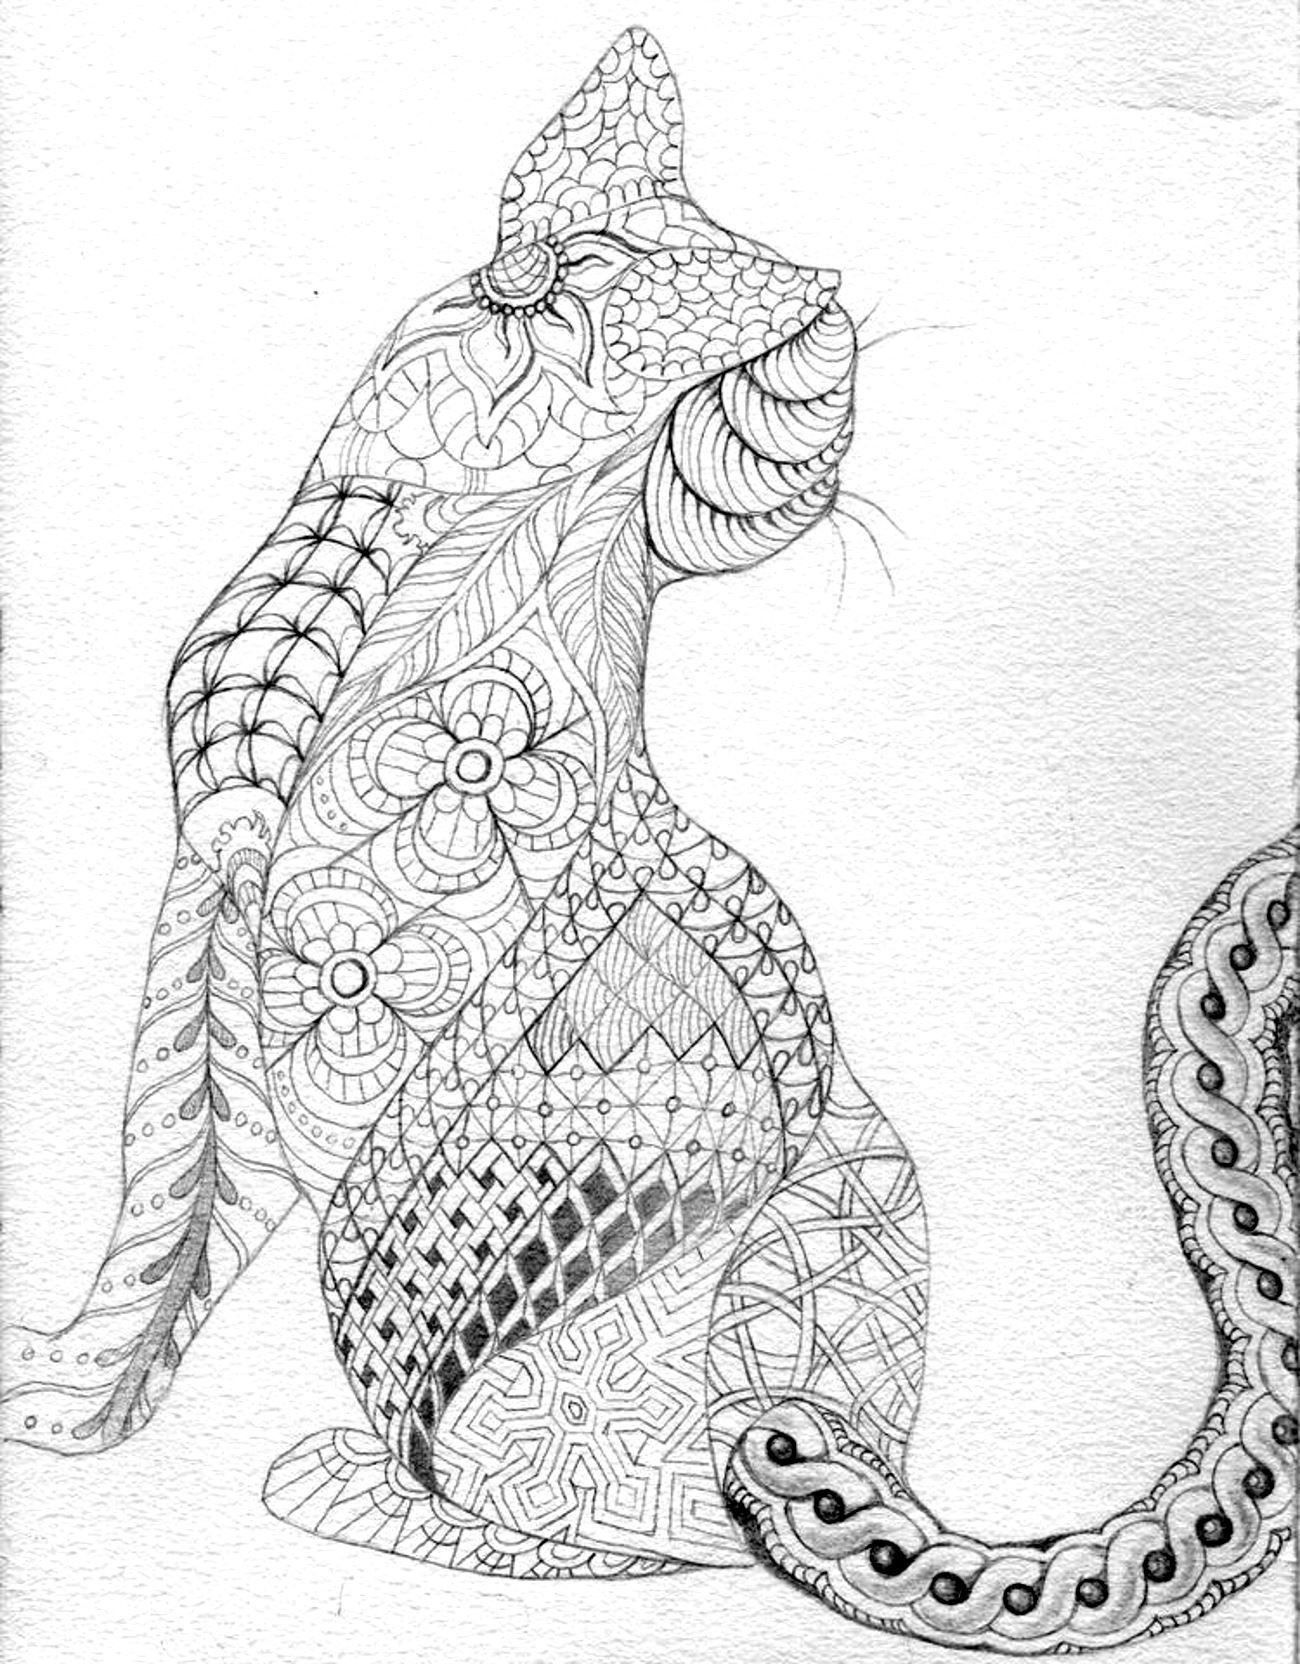 Fish In Flower Vase Of Complicated Animal Coloring Pages Lovely Cool Vases Flower Vase Inside Complicated Animal Coloring Pages Lovely Cool Vases Flower Vase Coloring Page Pages Flowers In A top